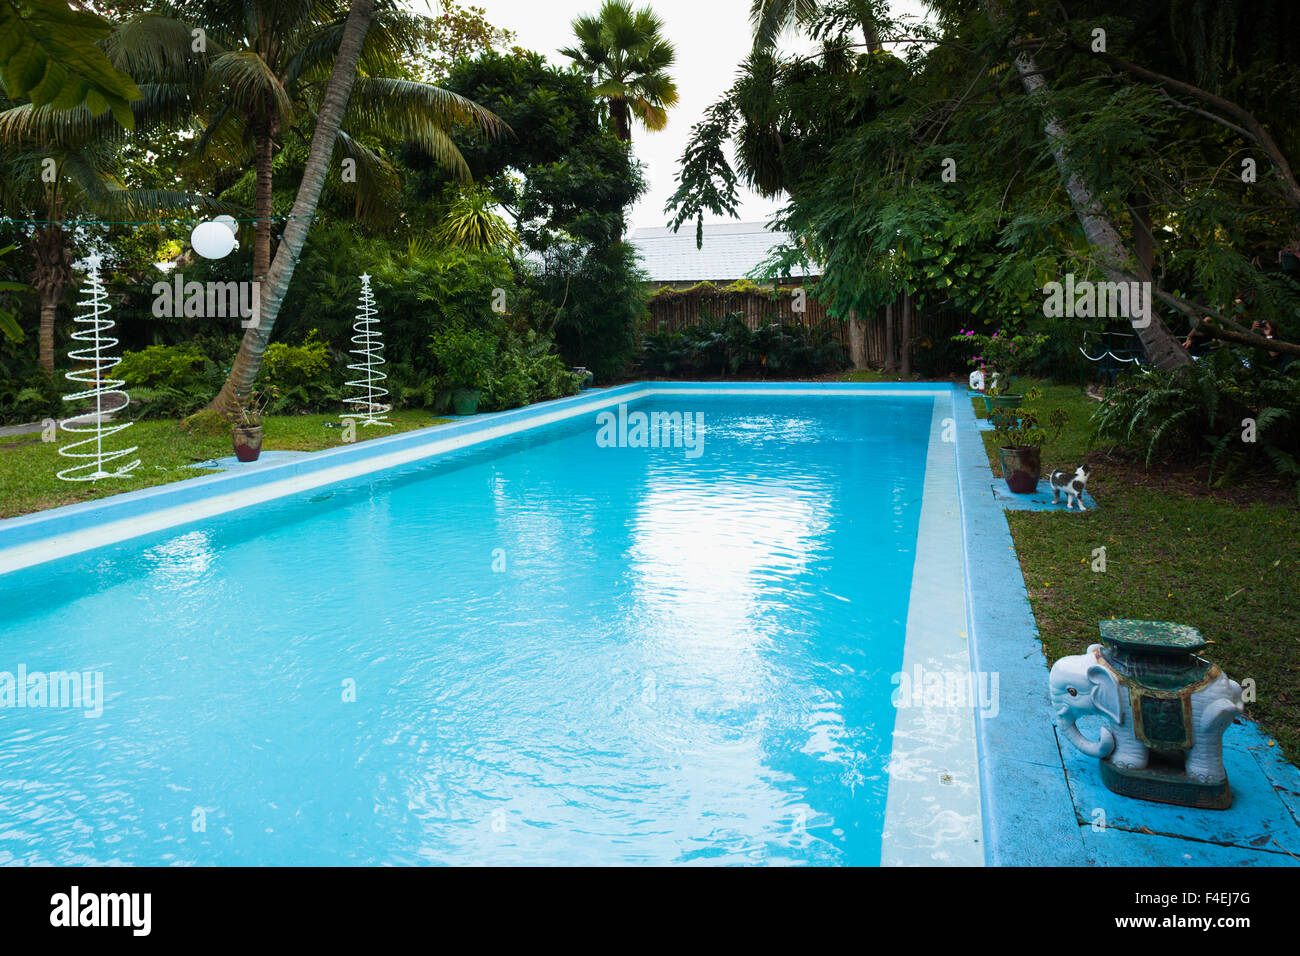 USA, Florida, Florida Keys, Key West, Hemingway House, former residence of famous American writer, swimming pool. Stock Photo